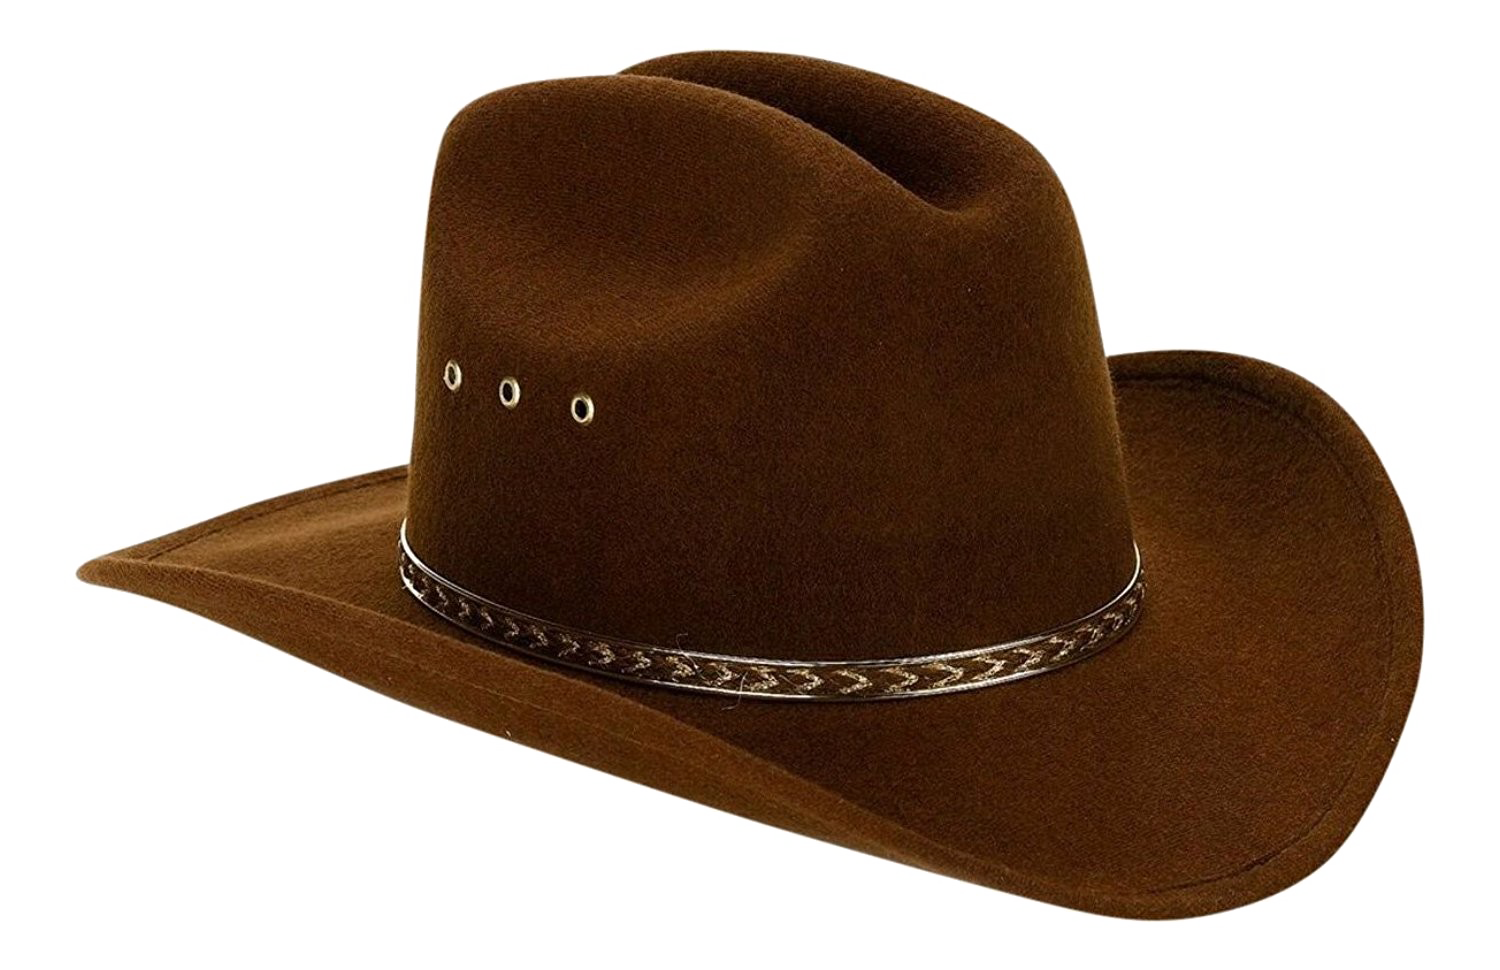 Cowboy hat transparent images pictures photos arts png